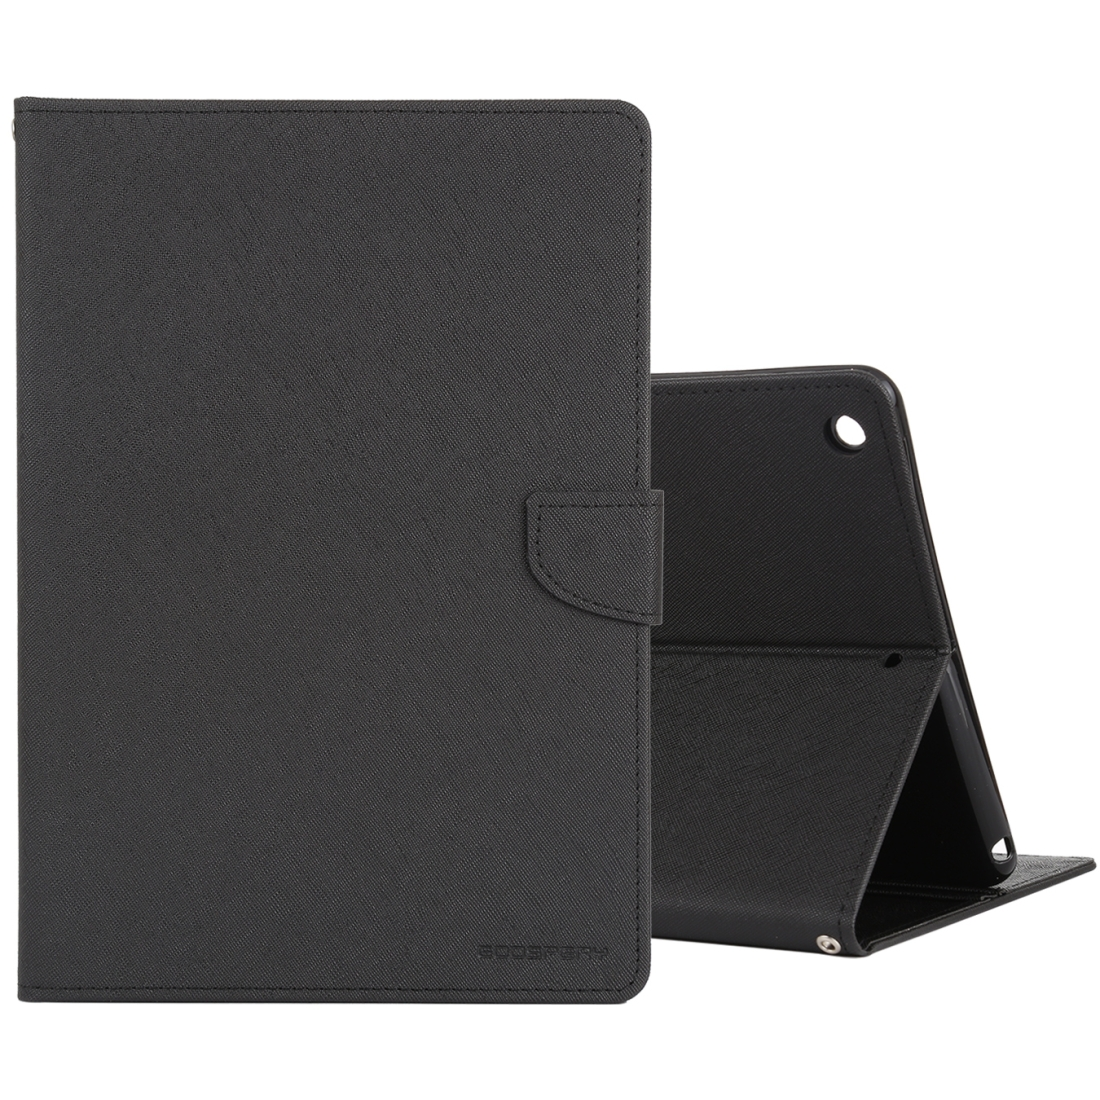 iPad 7th Generation Case (10.2 Inch) Cross Texture Leather Case with Sleeve & Holder (Black)